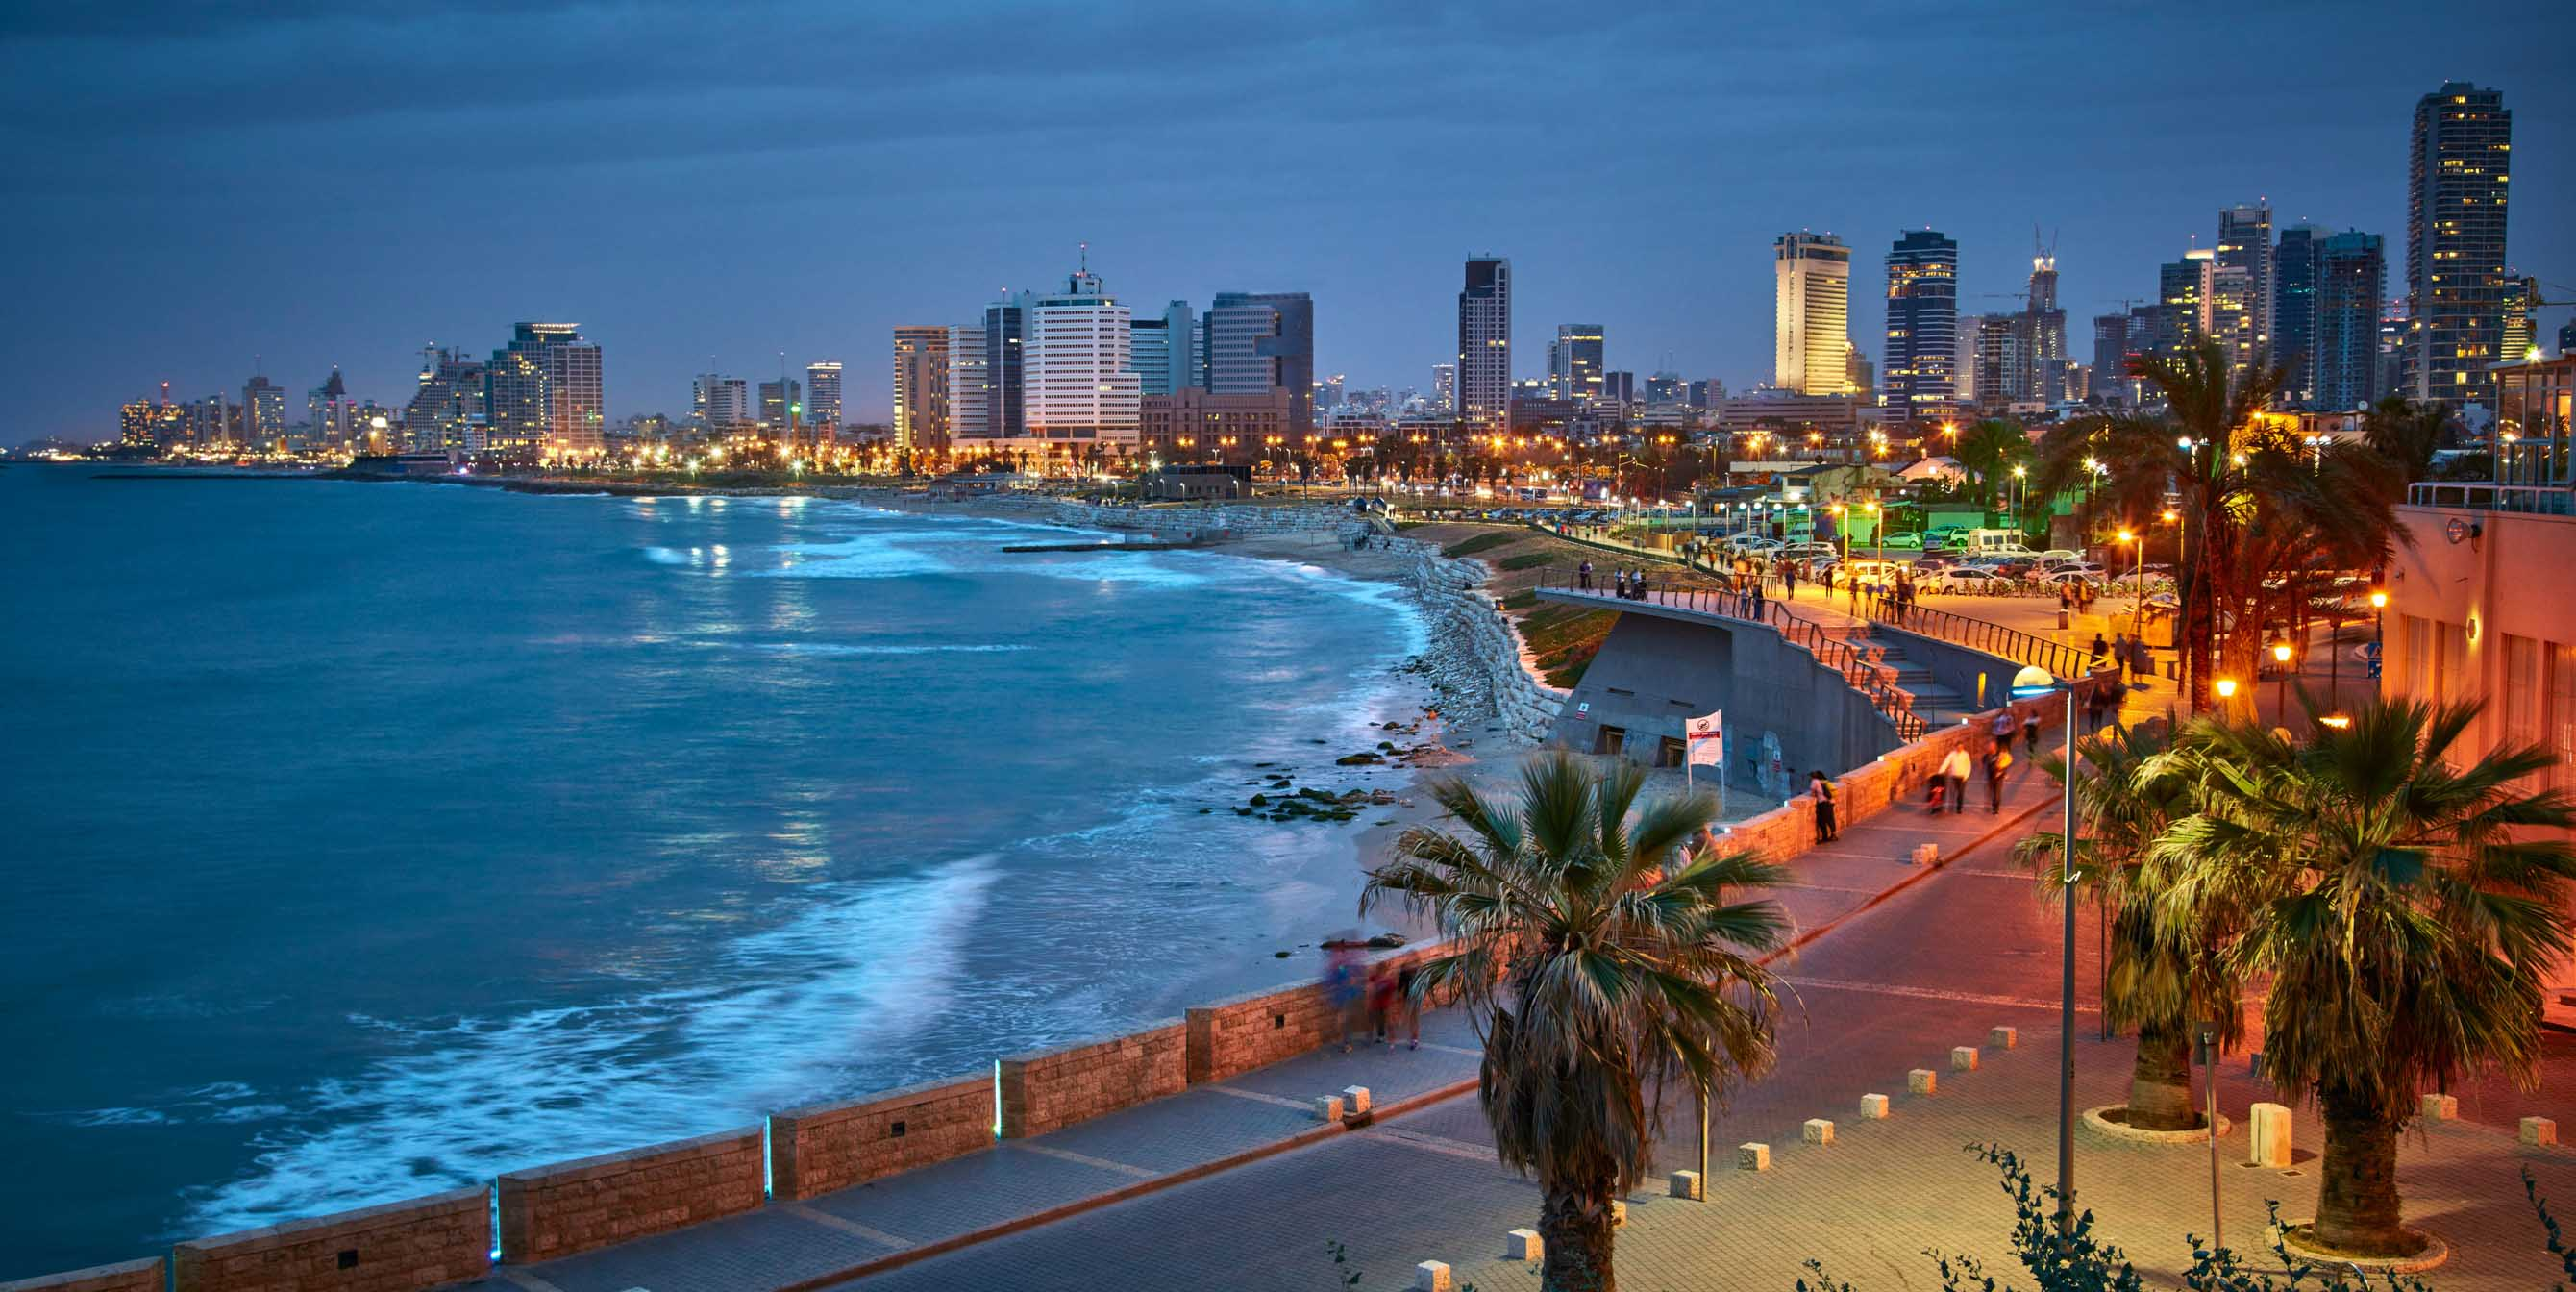 Tel Aviv skyline and waterfront at night